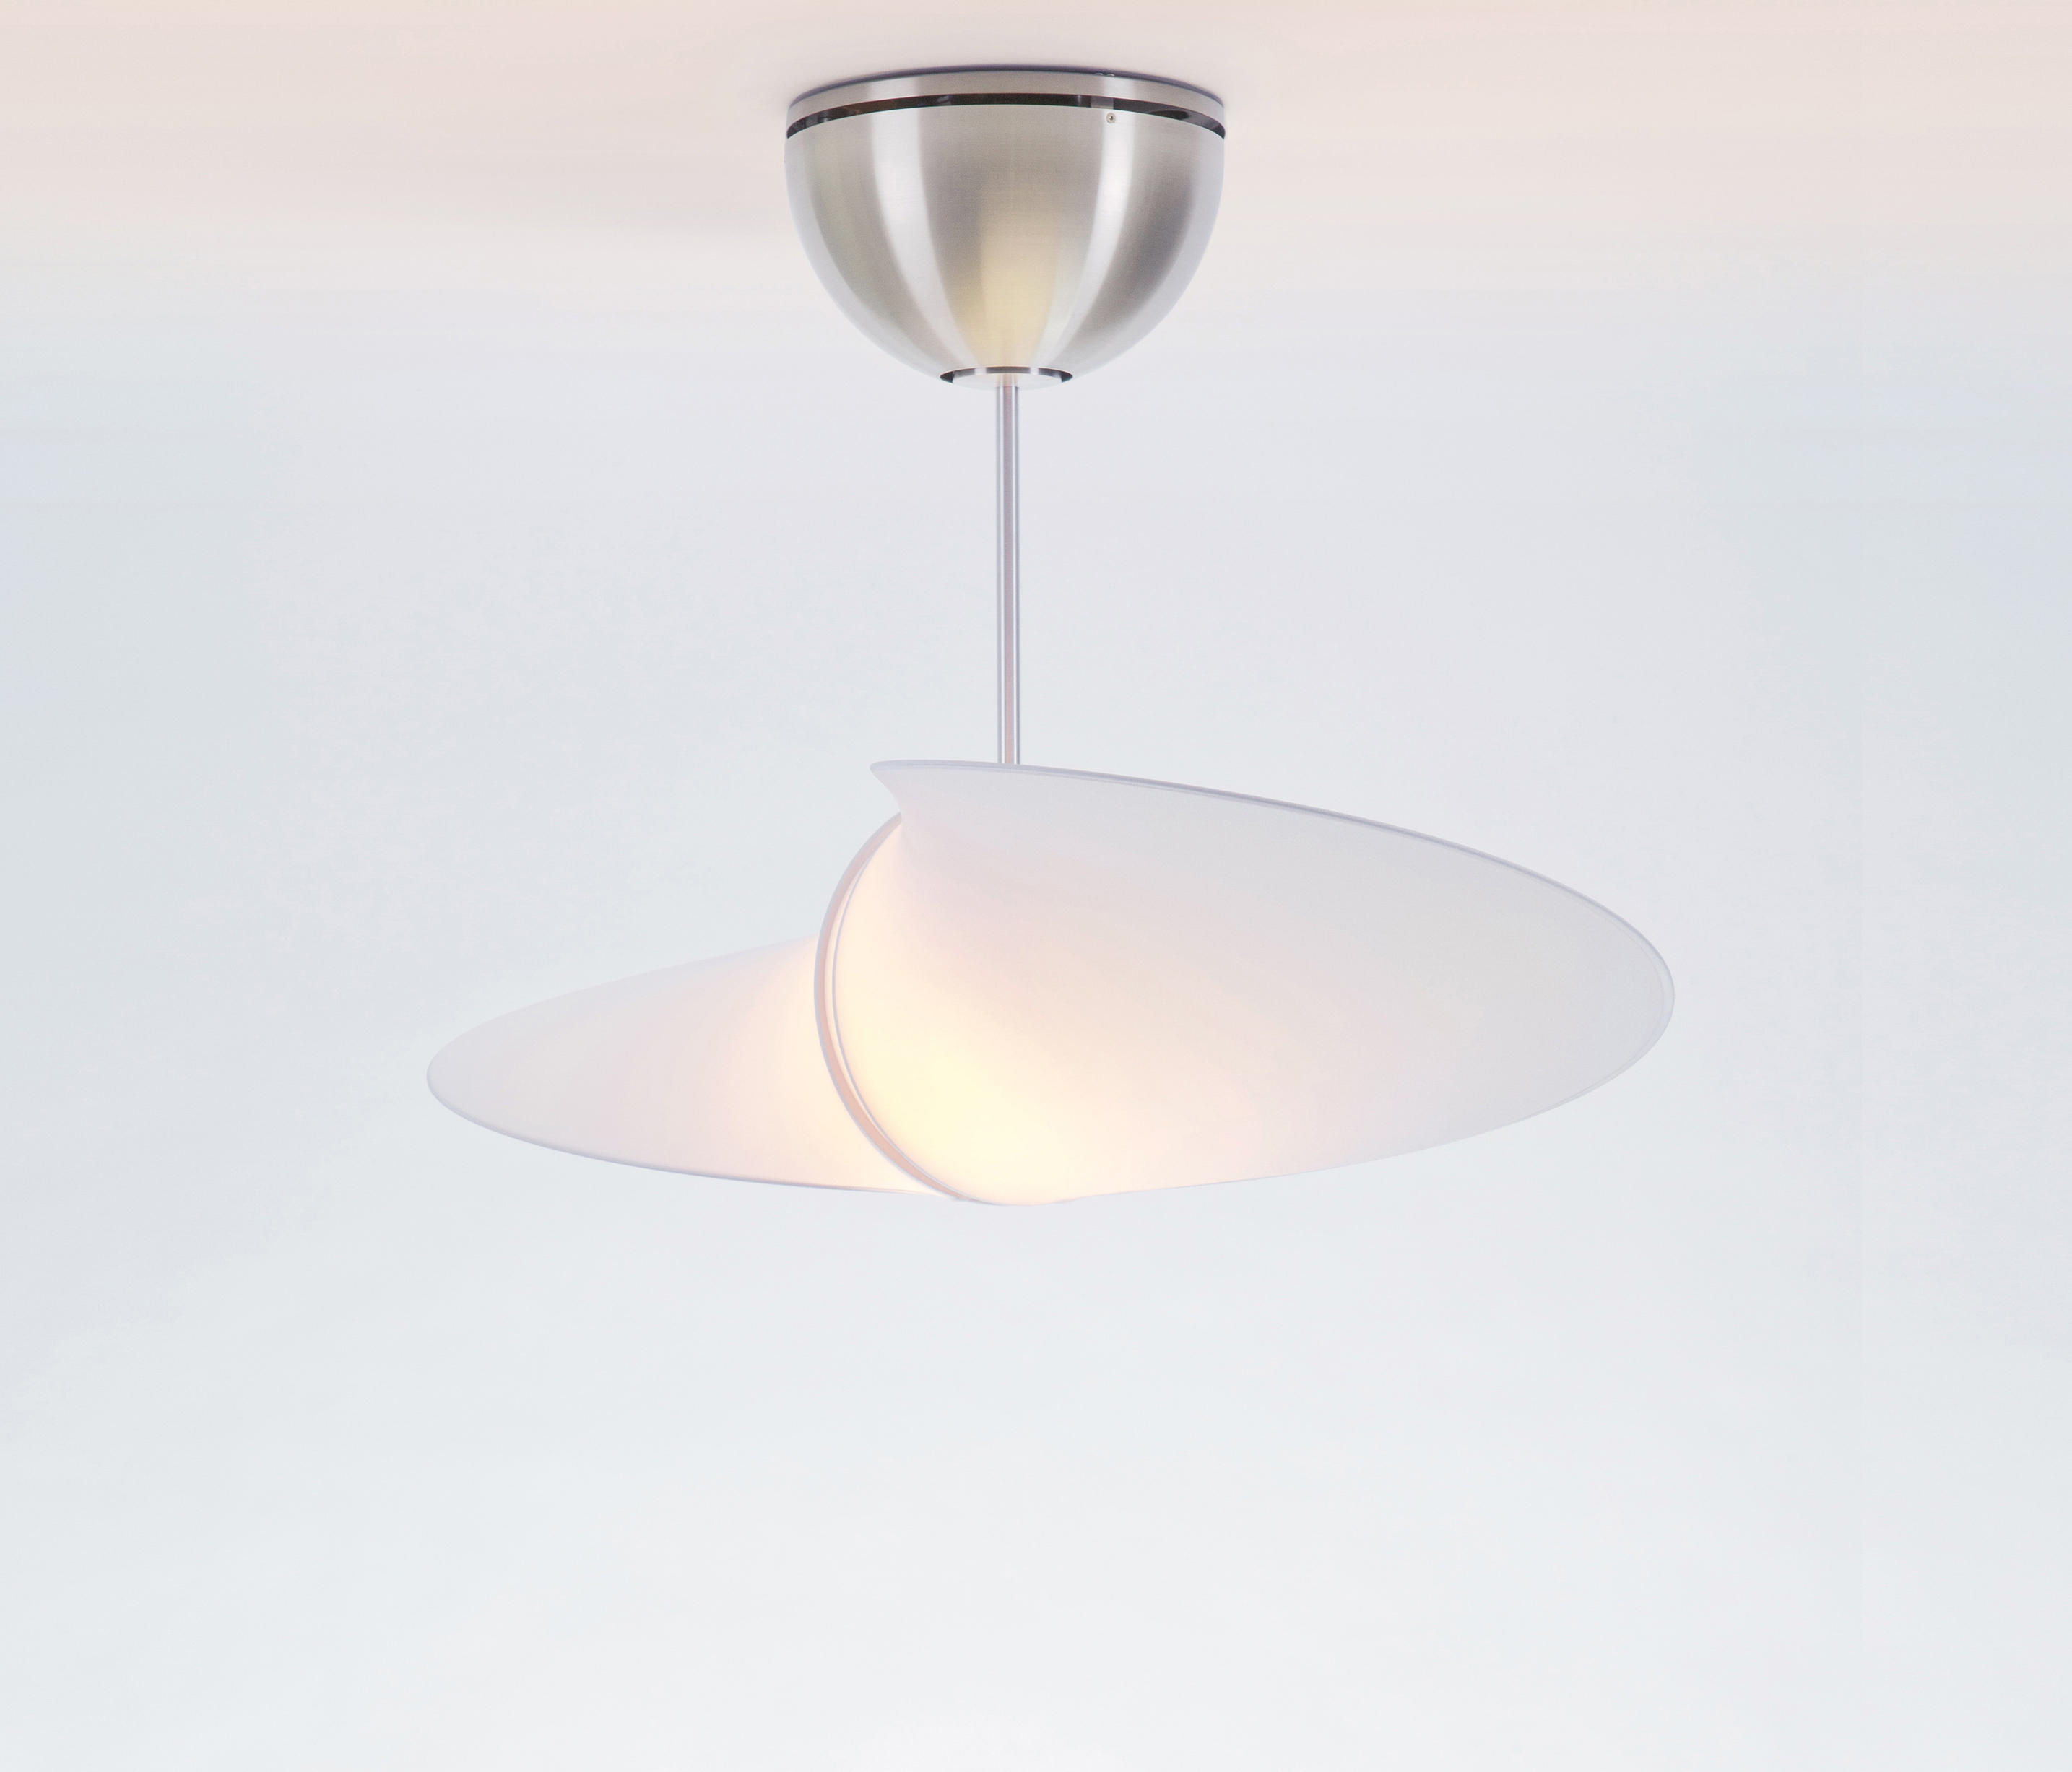 Serien Lighting Propeller Ceiling Lights From Serien Lighting Architonic